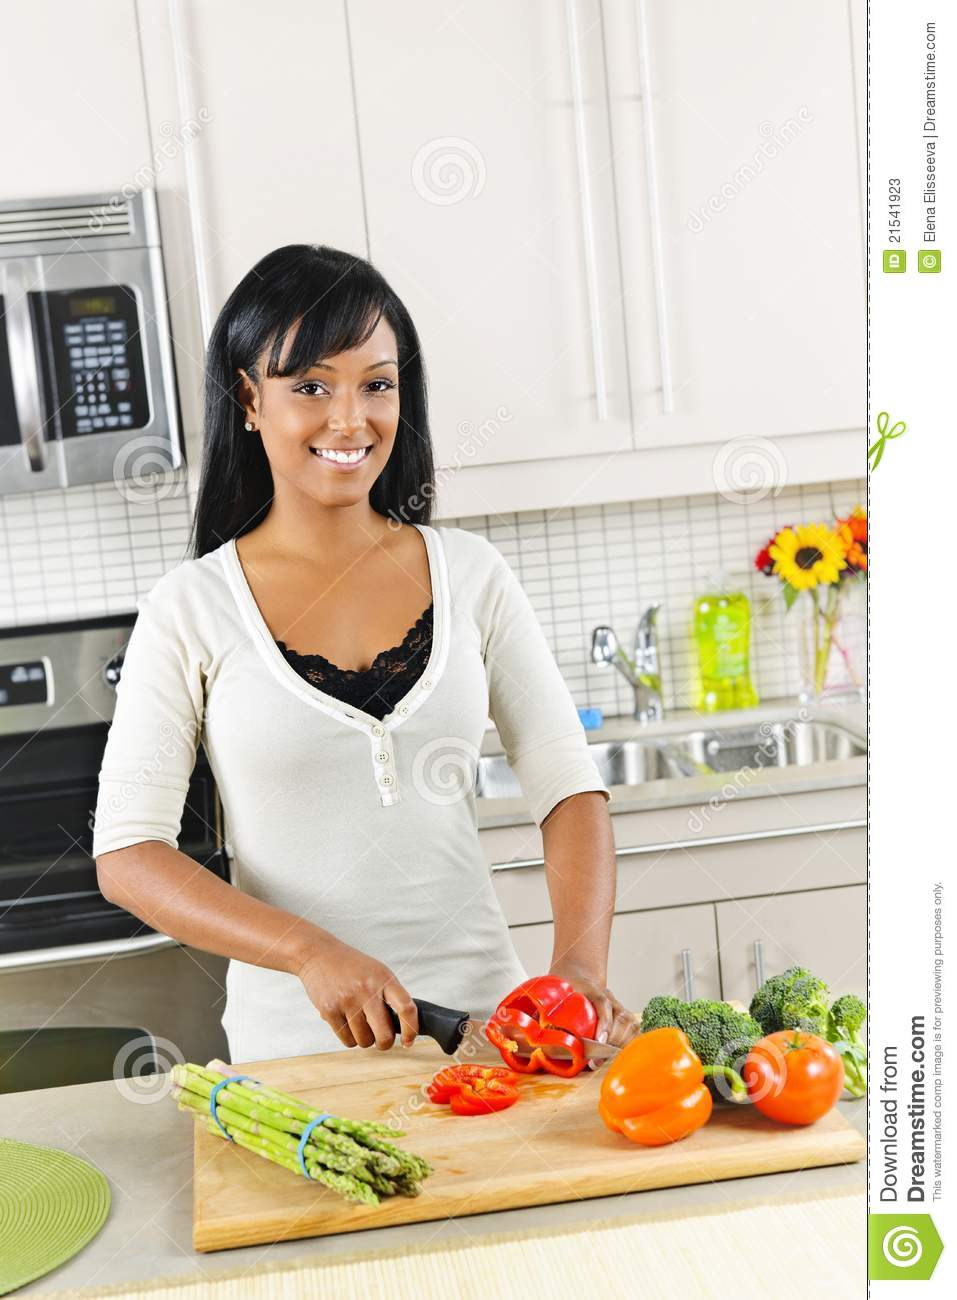 Young Woman Cutting Vegetables In Kitchen Stock Image